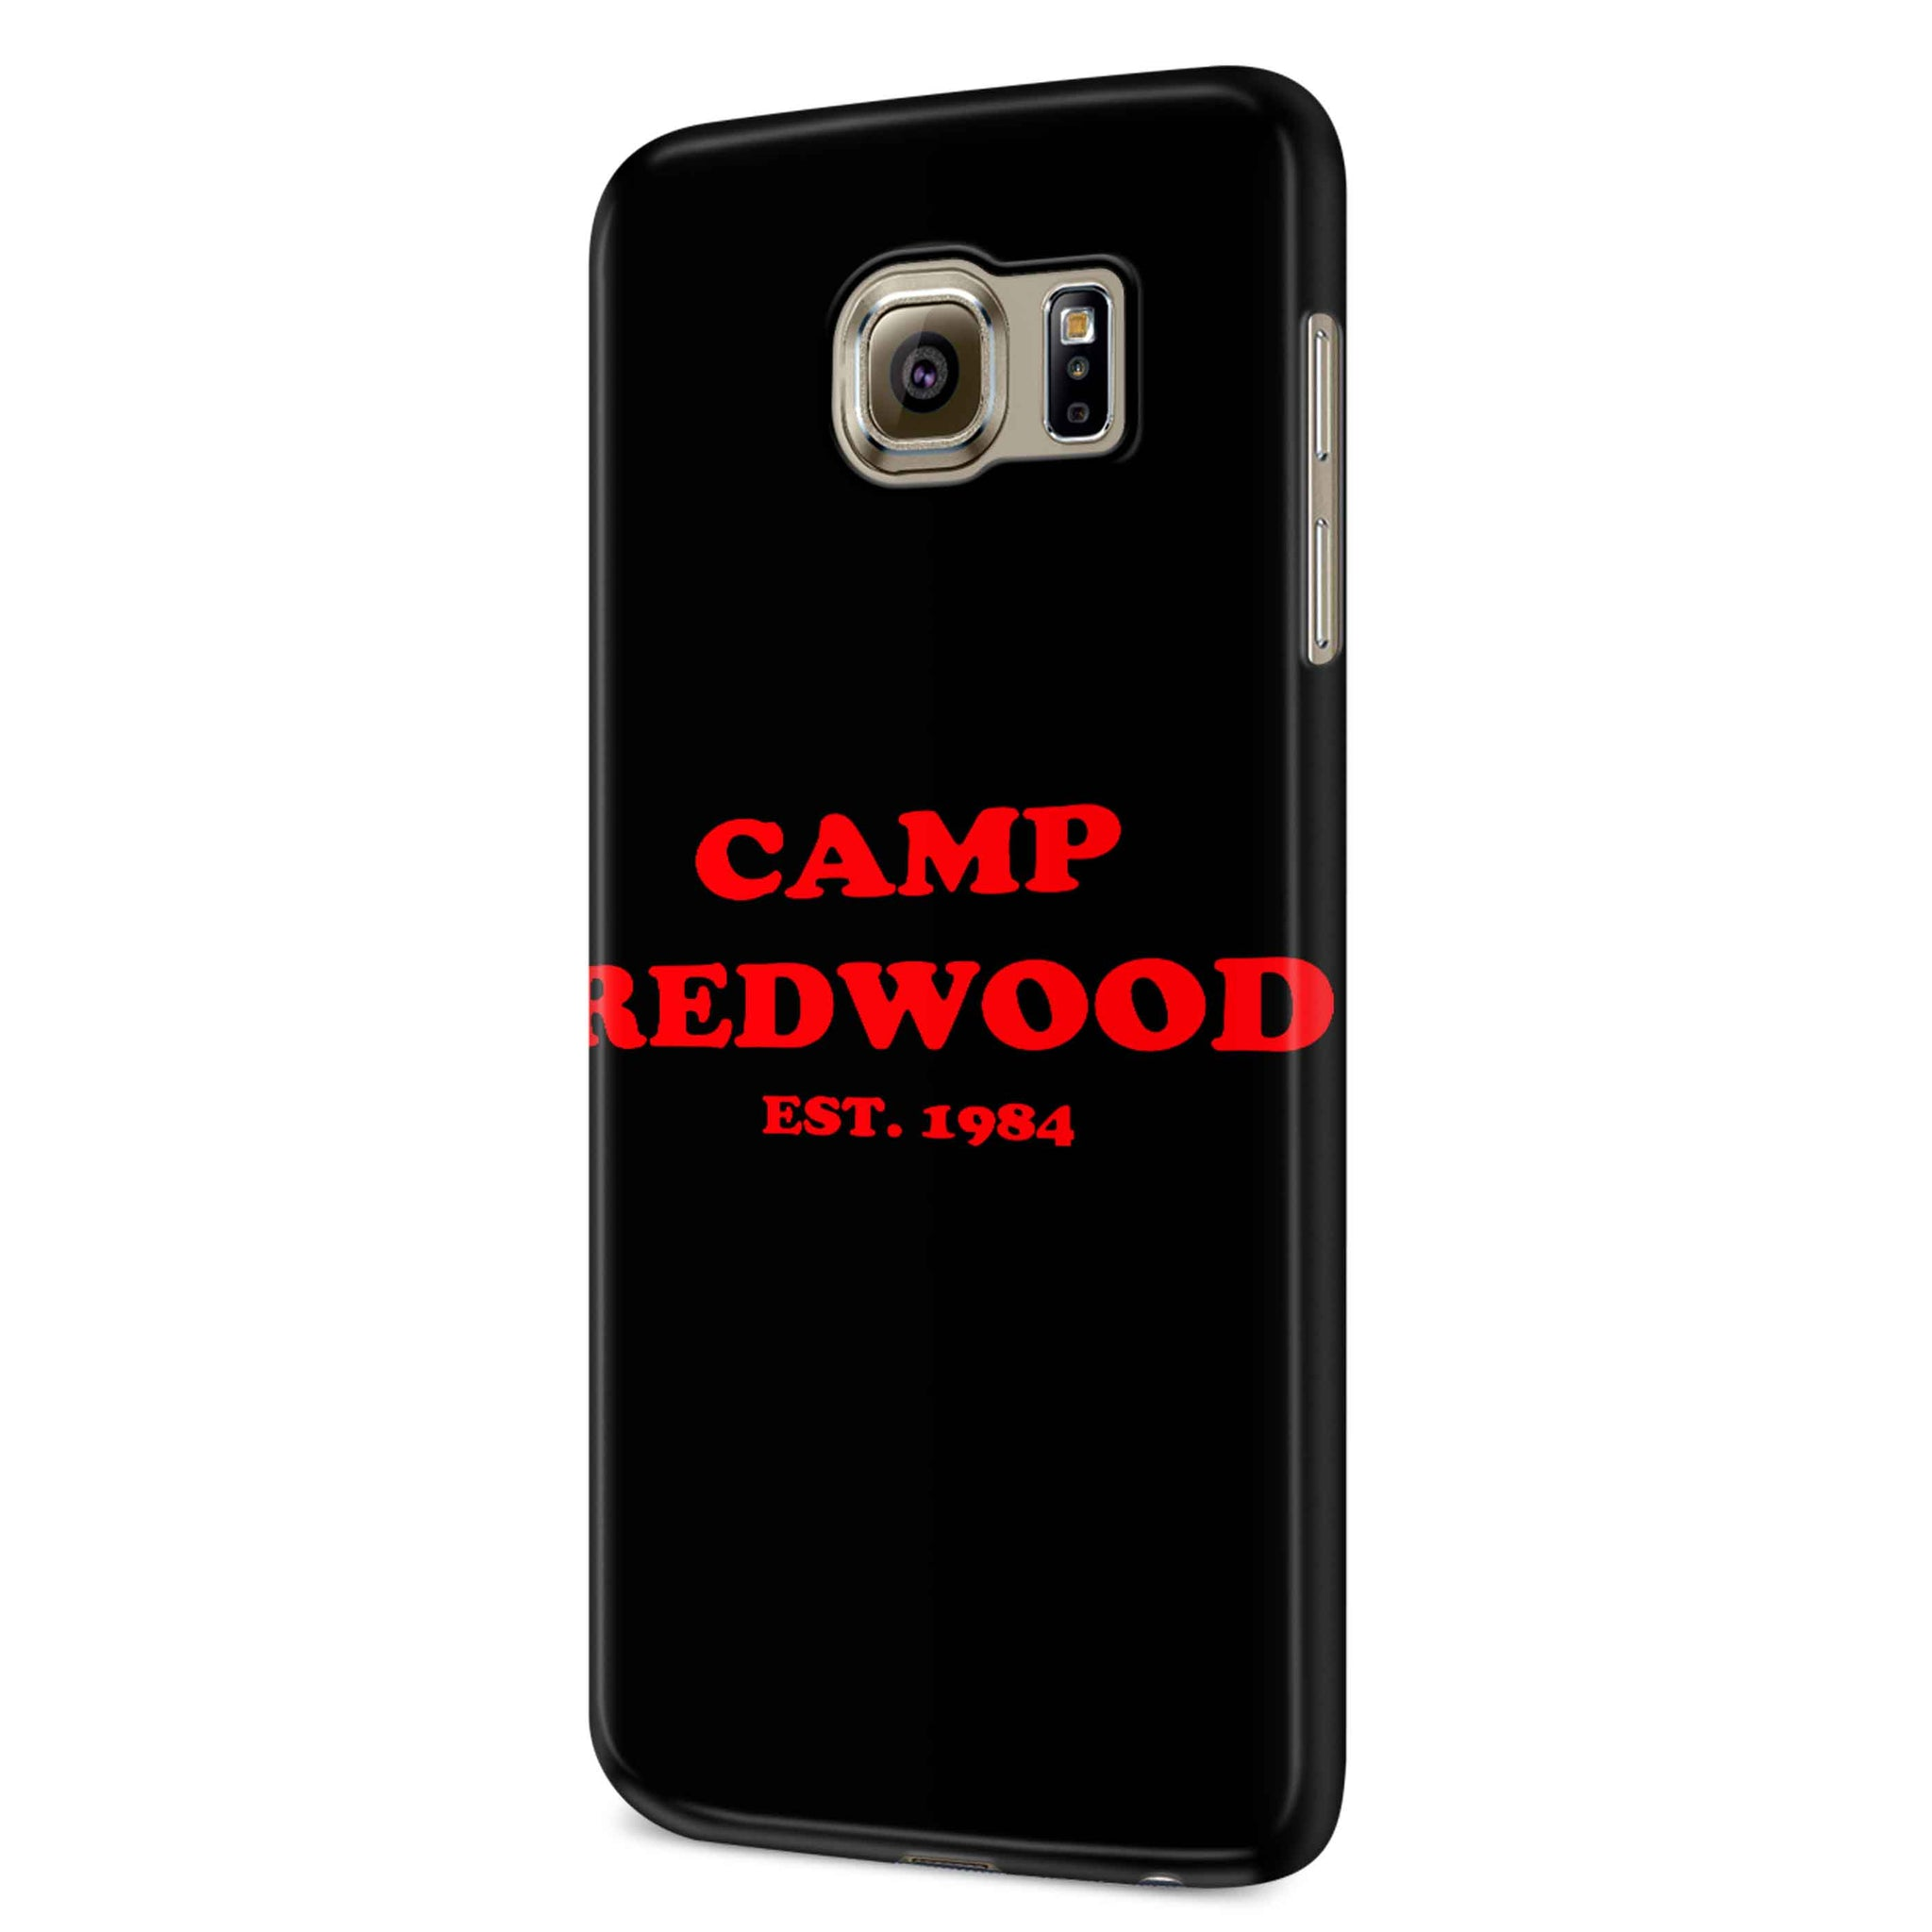 Camp Redwood 1984 Samsung Galaxy S6 S6 Edge Plus/ S7 S7 Edge / S8 S8 Plus / S9 S9 plus 3D Case